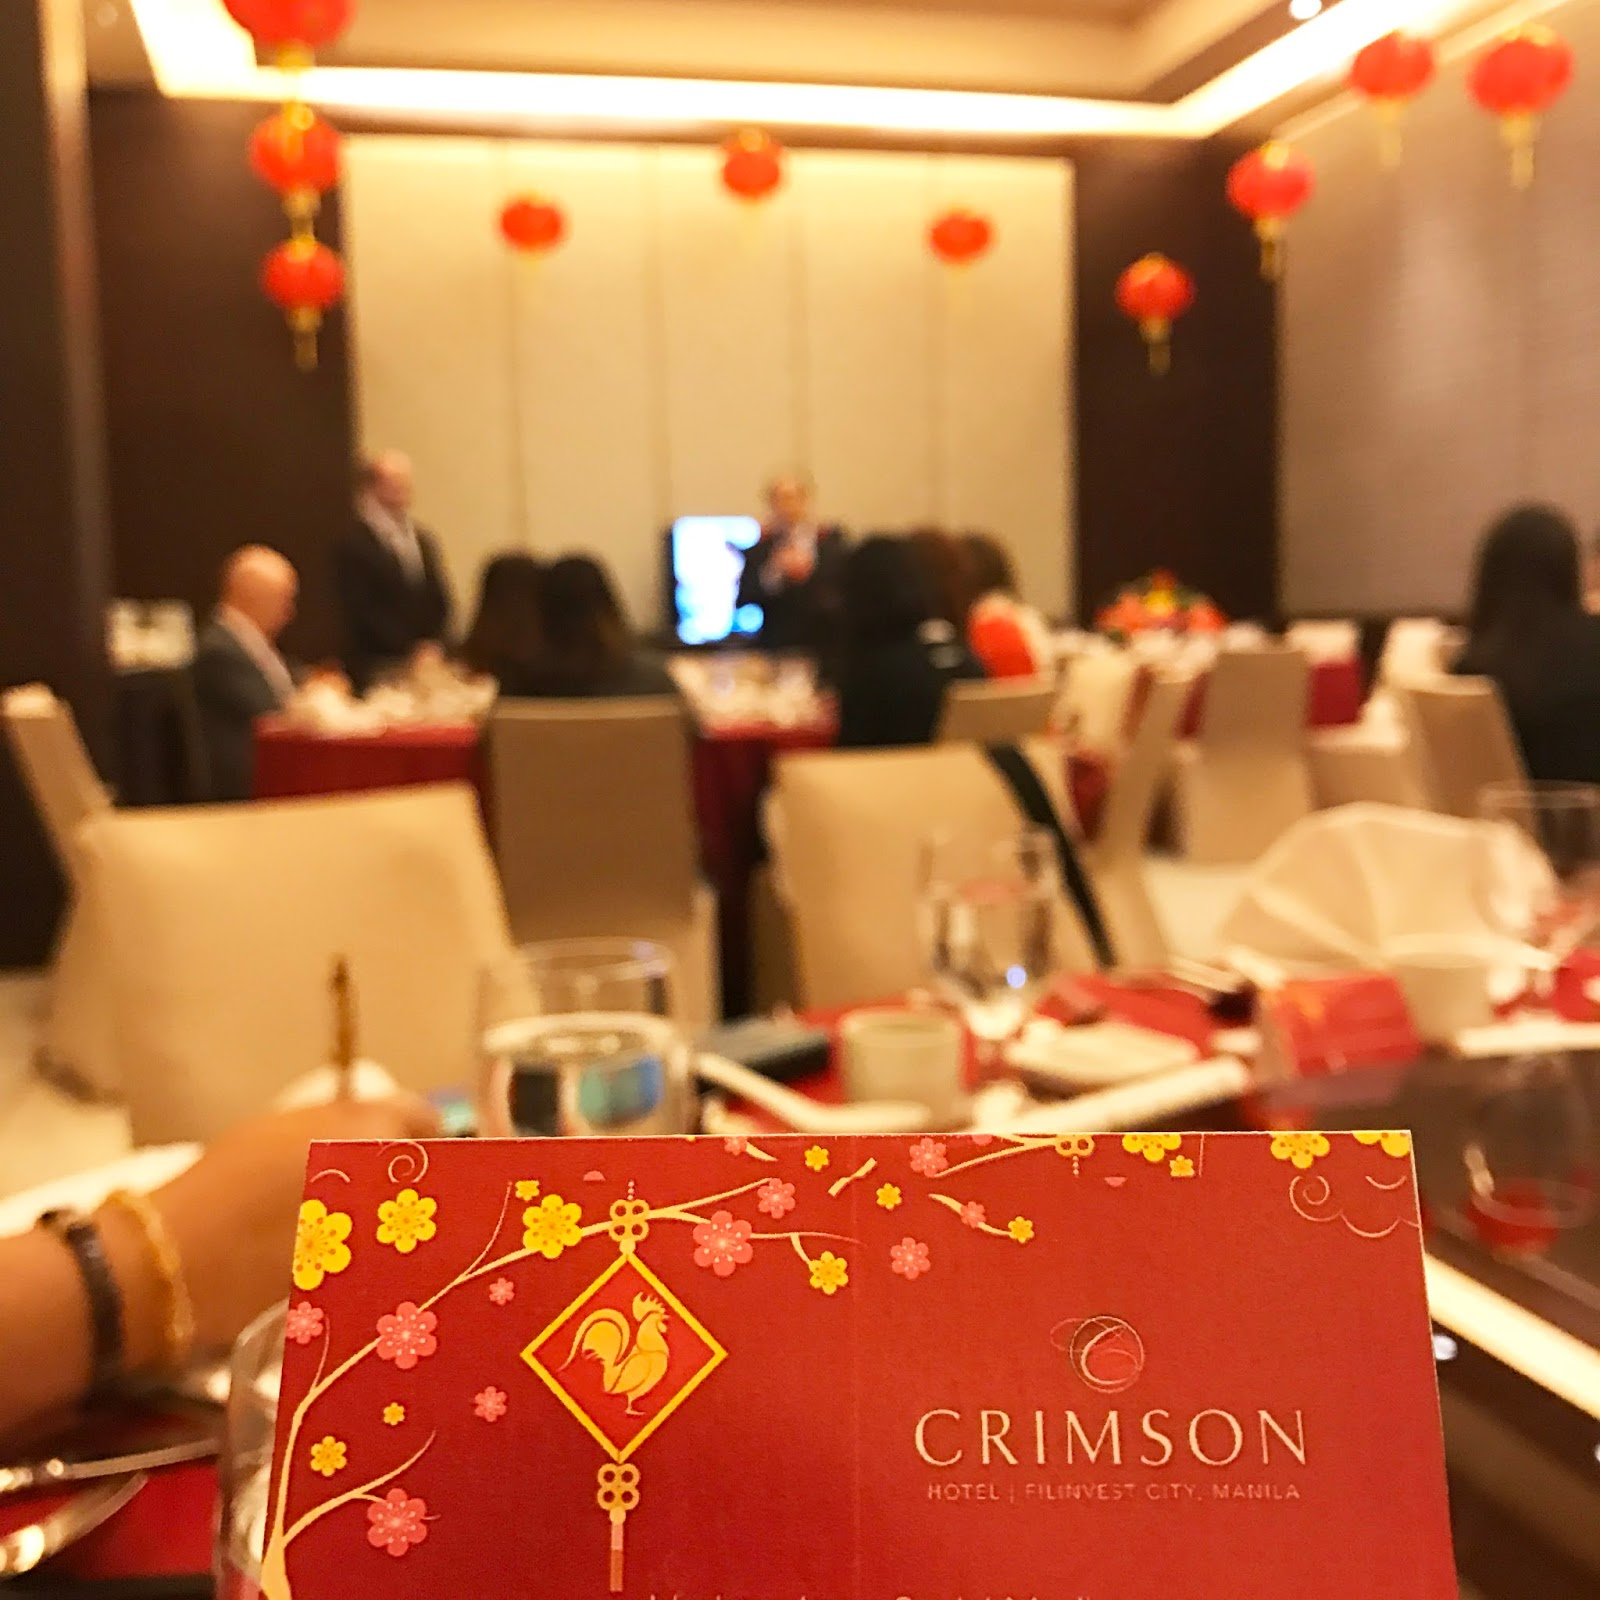 Celebrate Chinese New Year at Crimson Hotel In Filinvest, Alabang